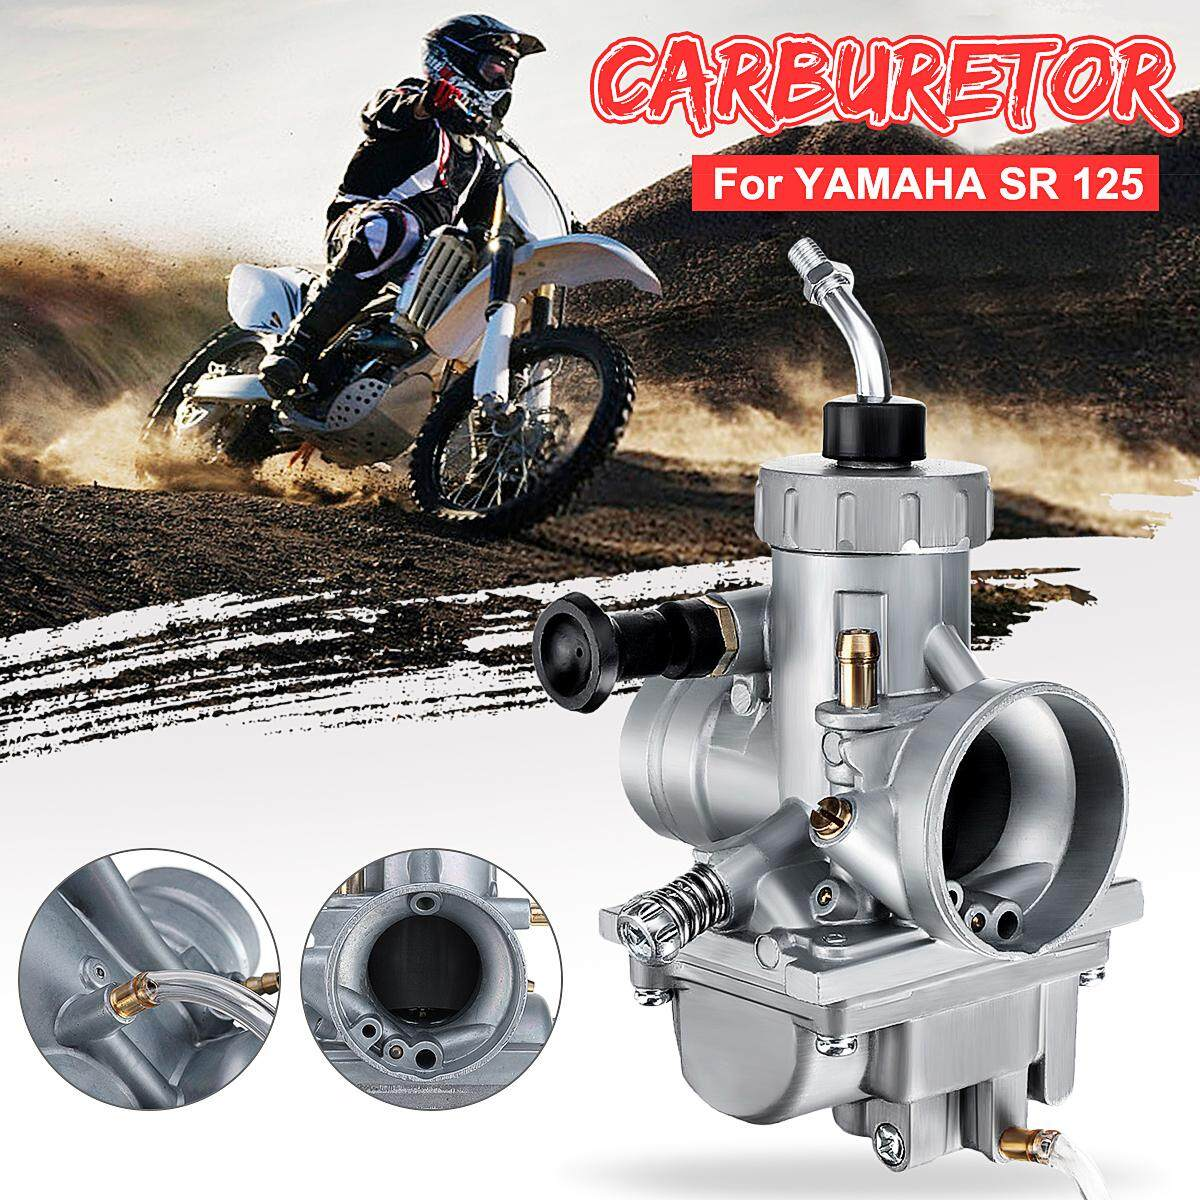 【free Shipping + Flash Deal】new Metal Motorcycle Carburetor For Yamaha Sr 125 All By The One..